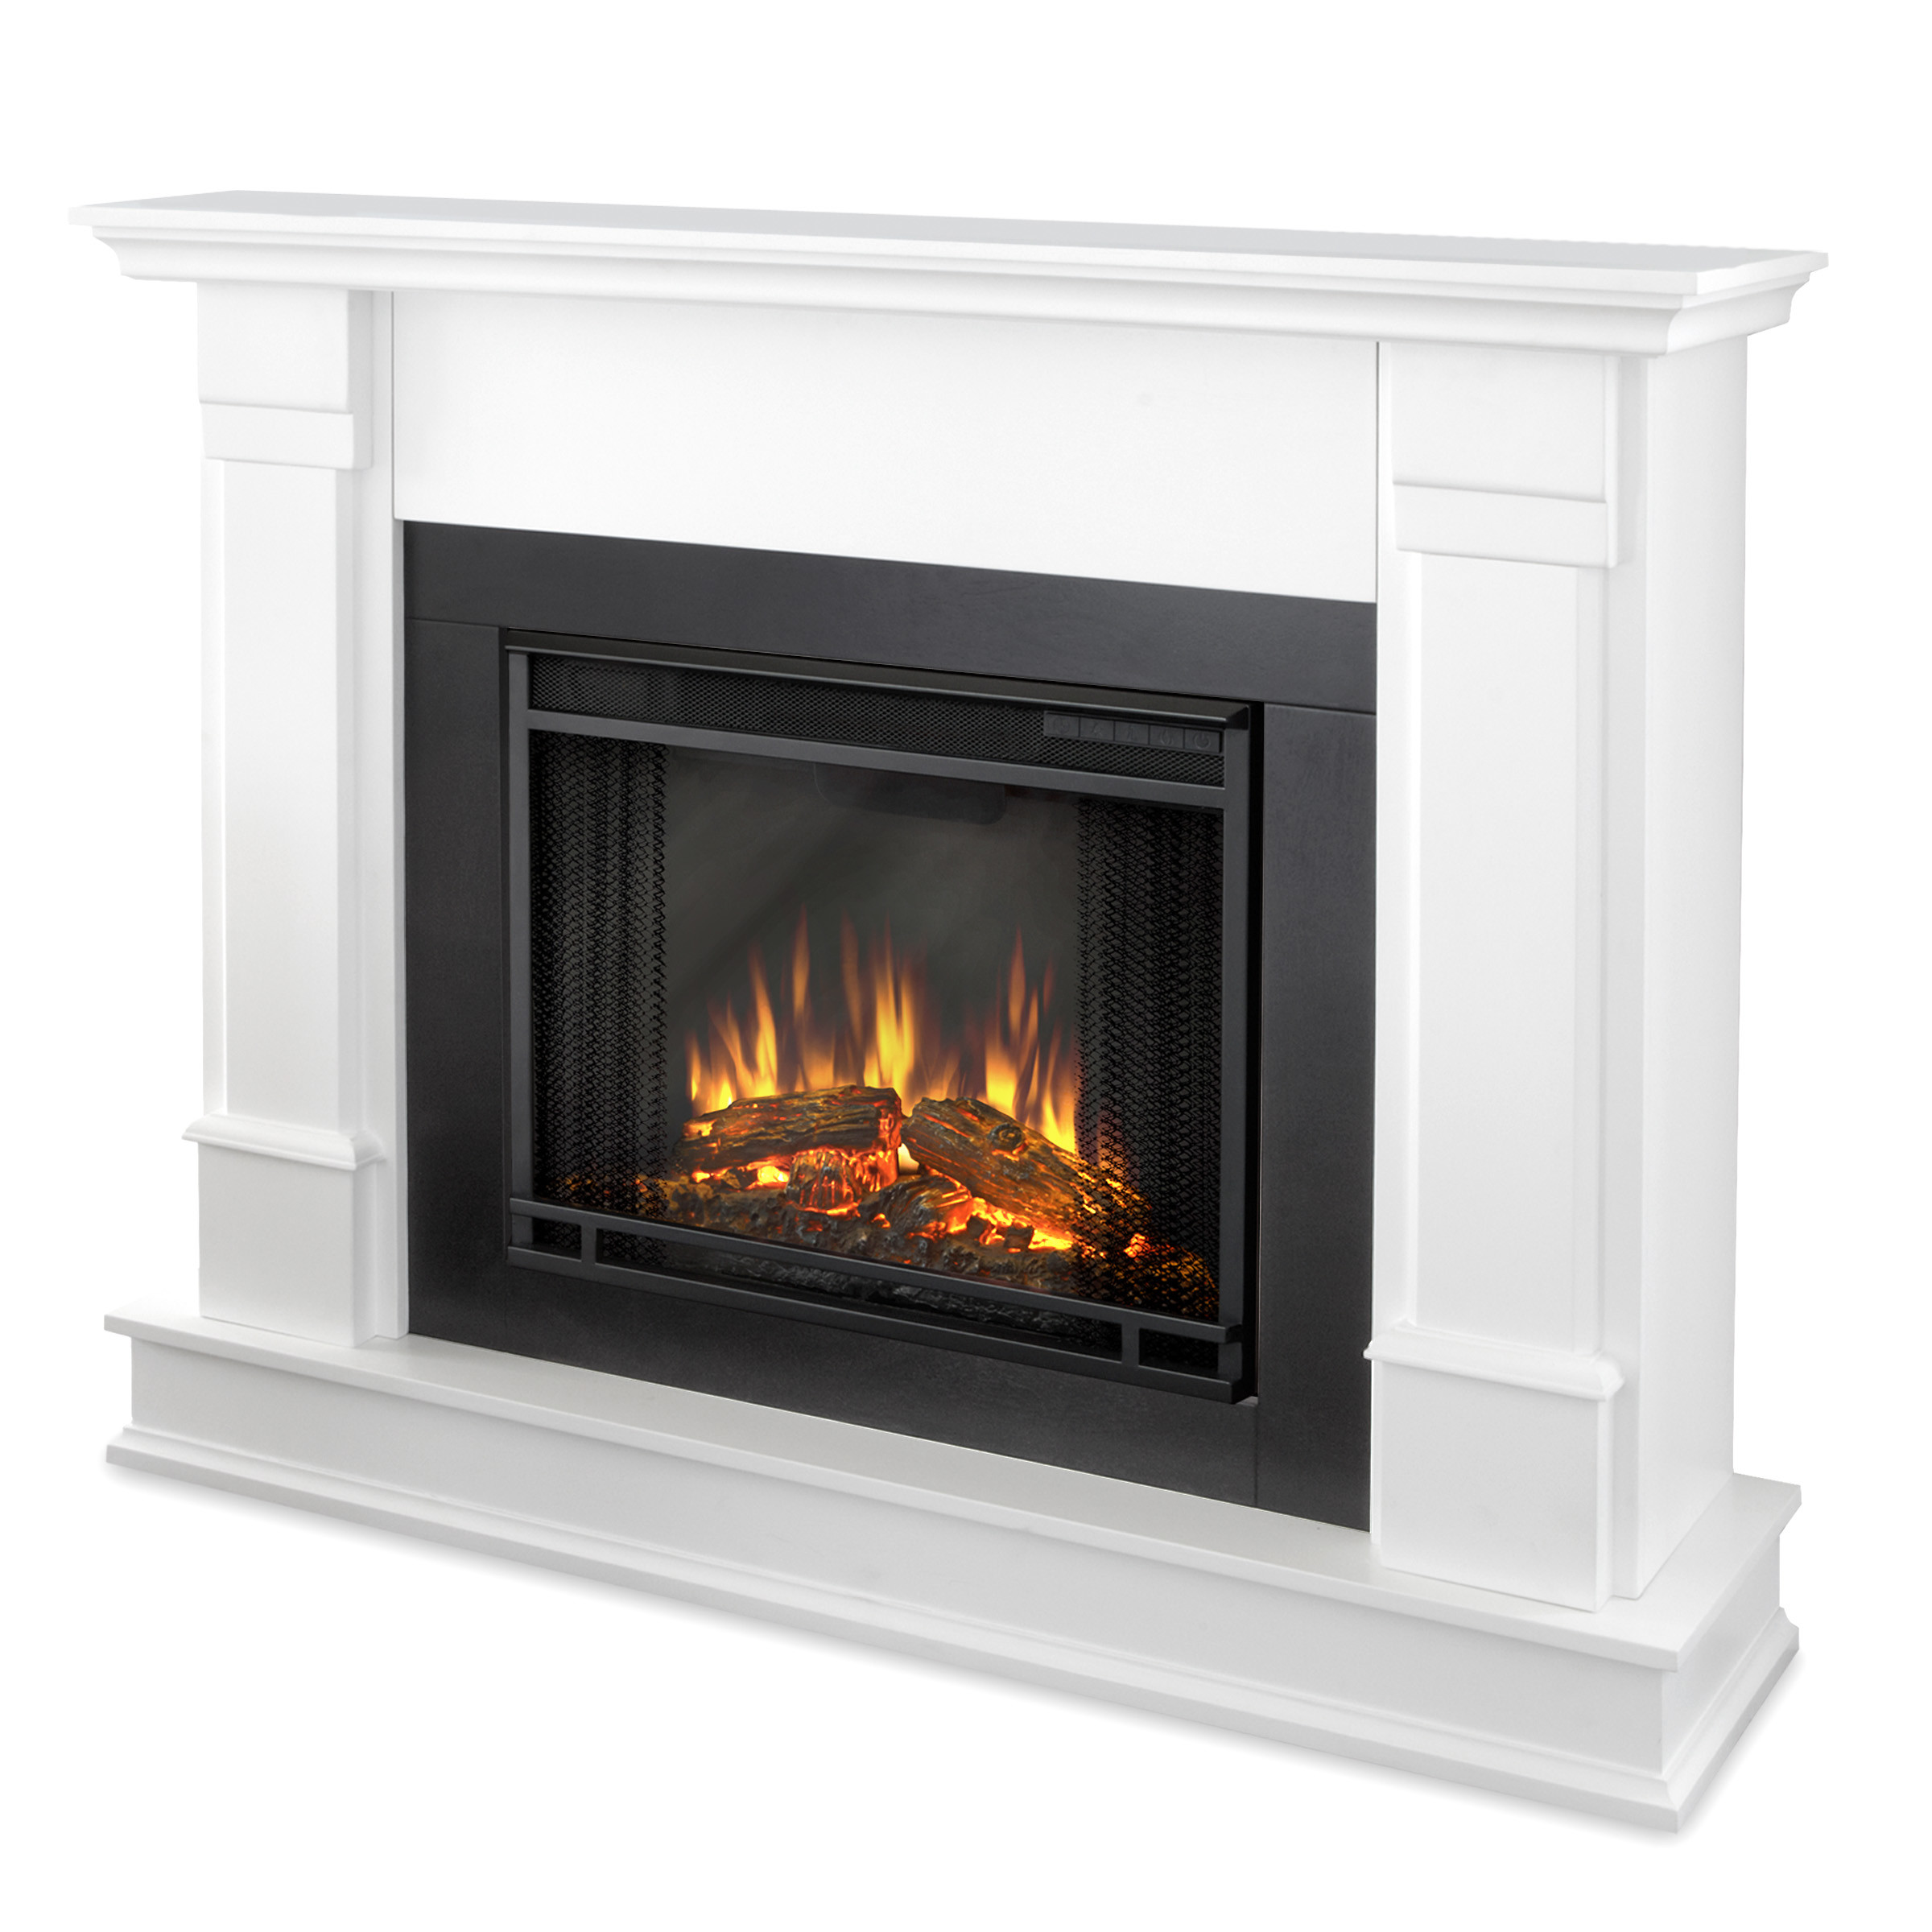 Fascinating muskoka electric fireplace for home furniture with muskoka electric fireplace insert